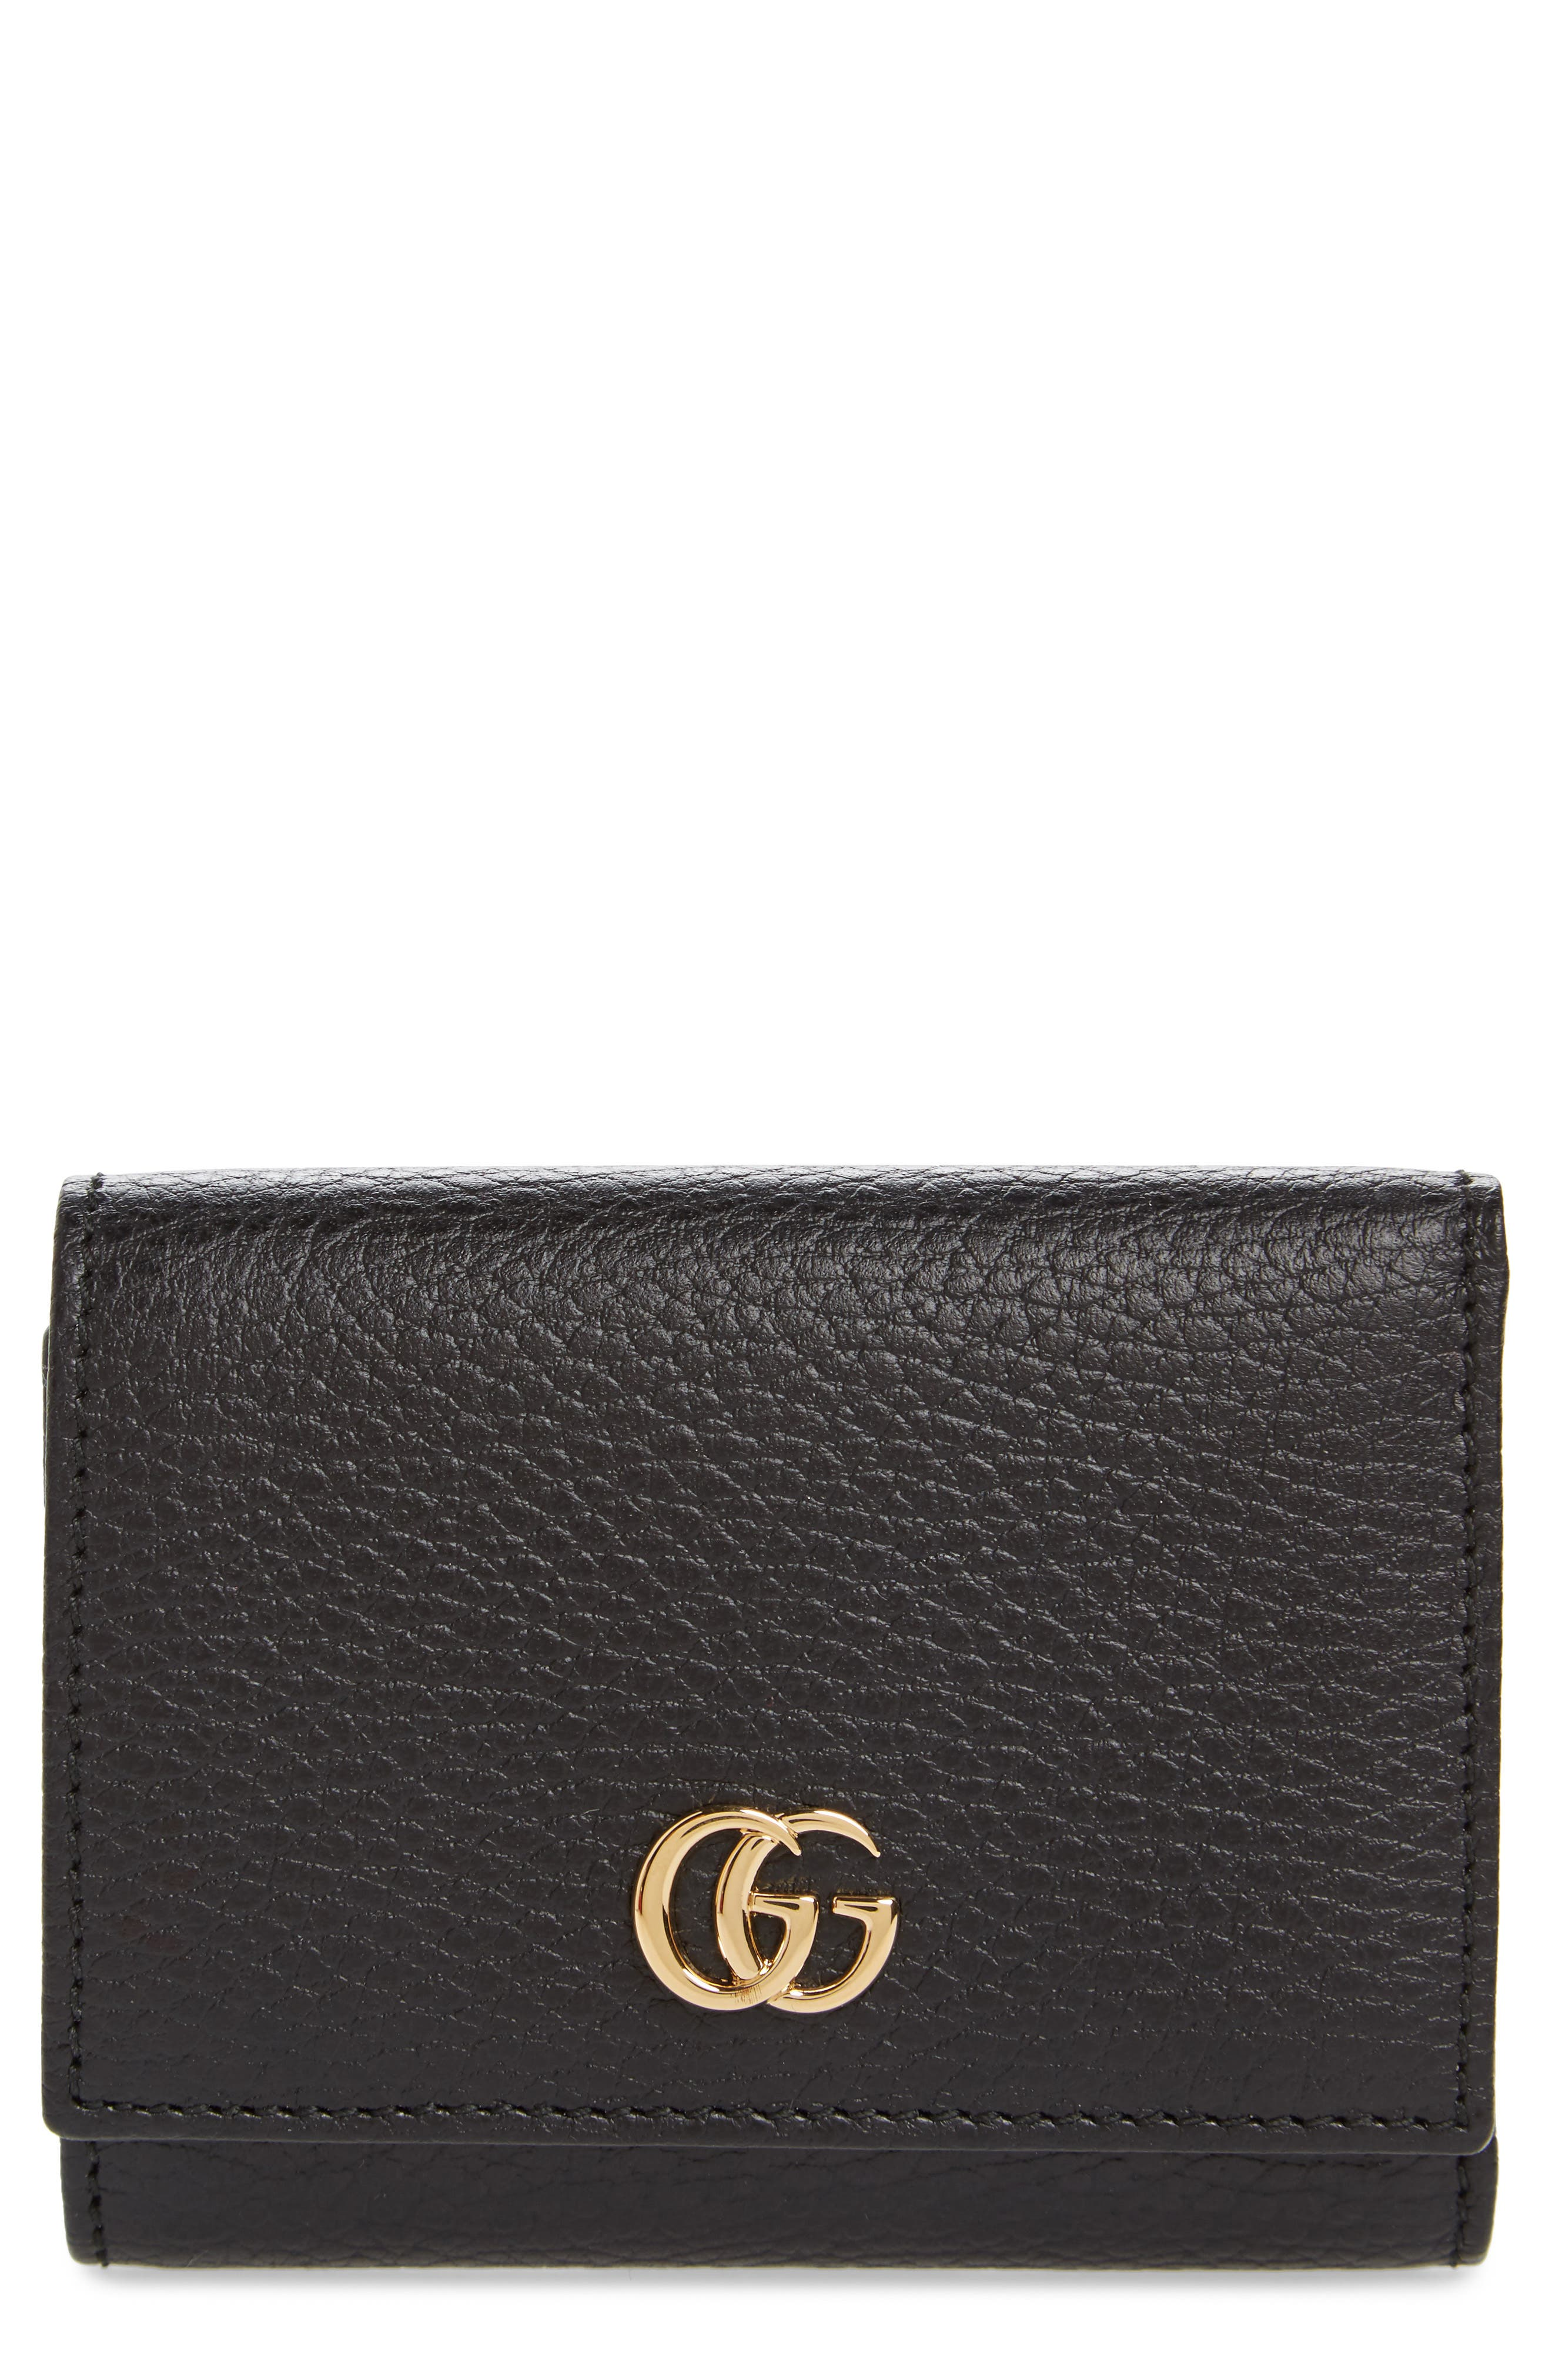 Petite Marmont Leather French Wallet,                         Main,                         color,